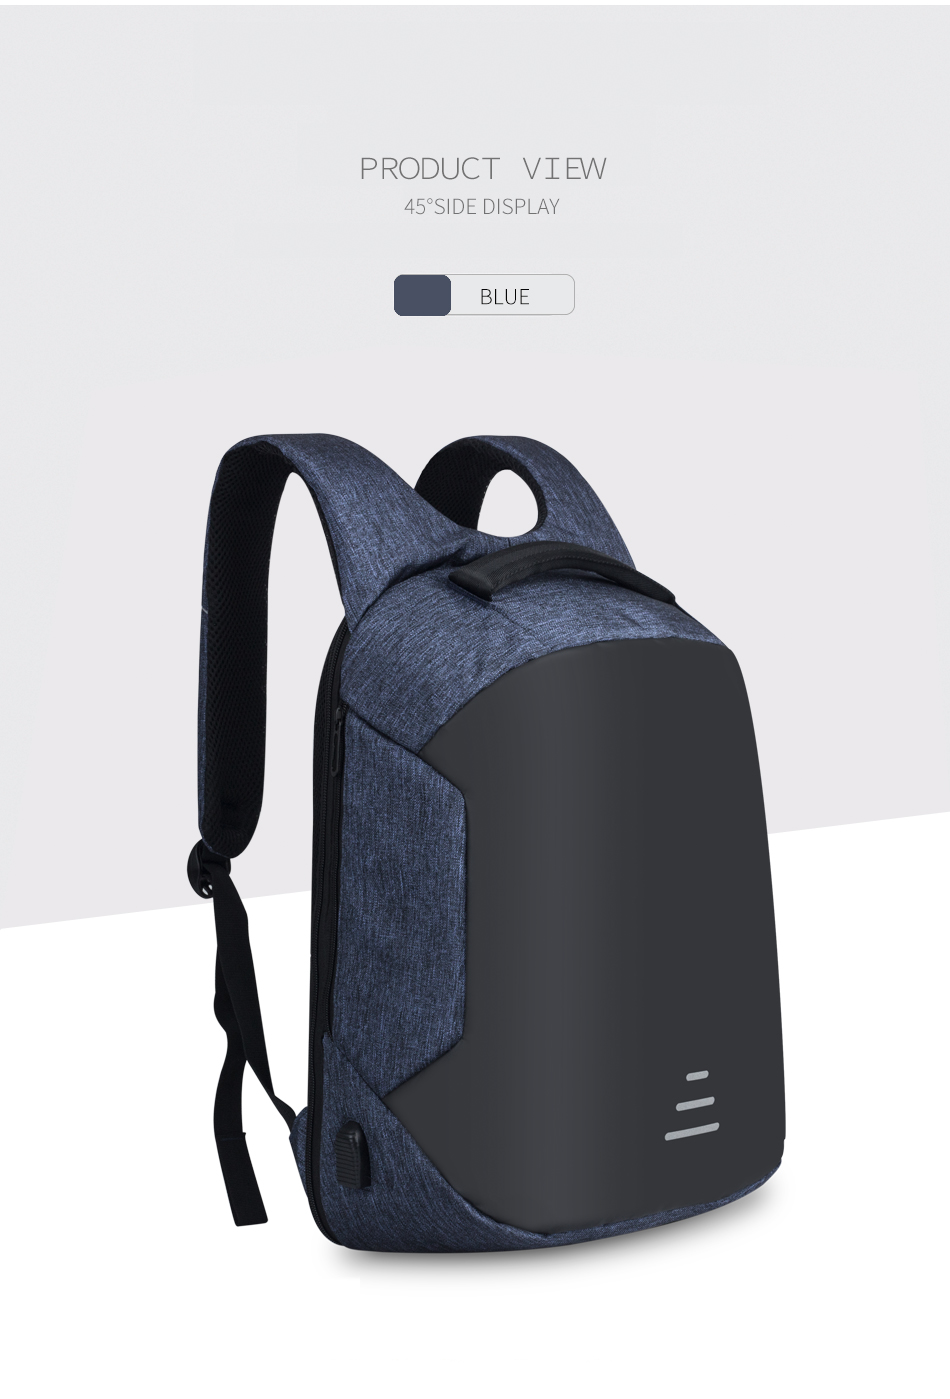 Anti Theft Business Laptop Backpack with USB Charging